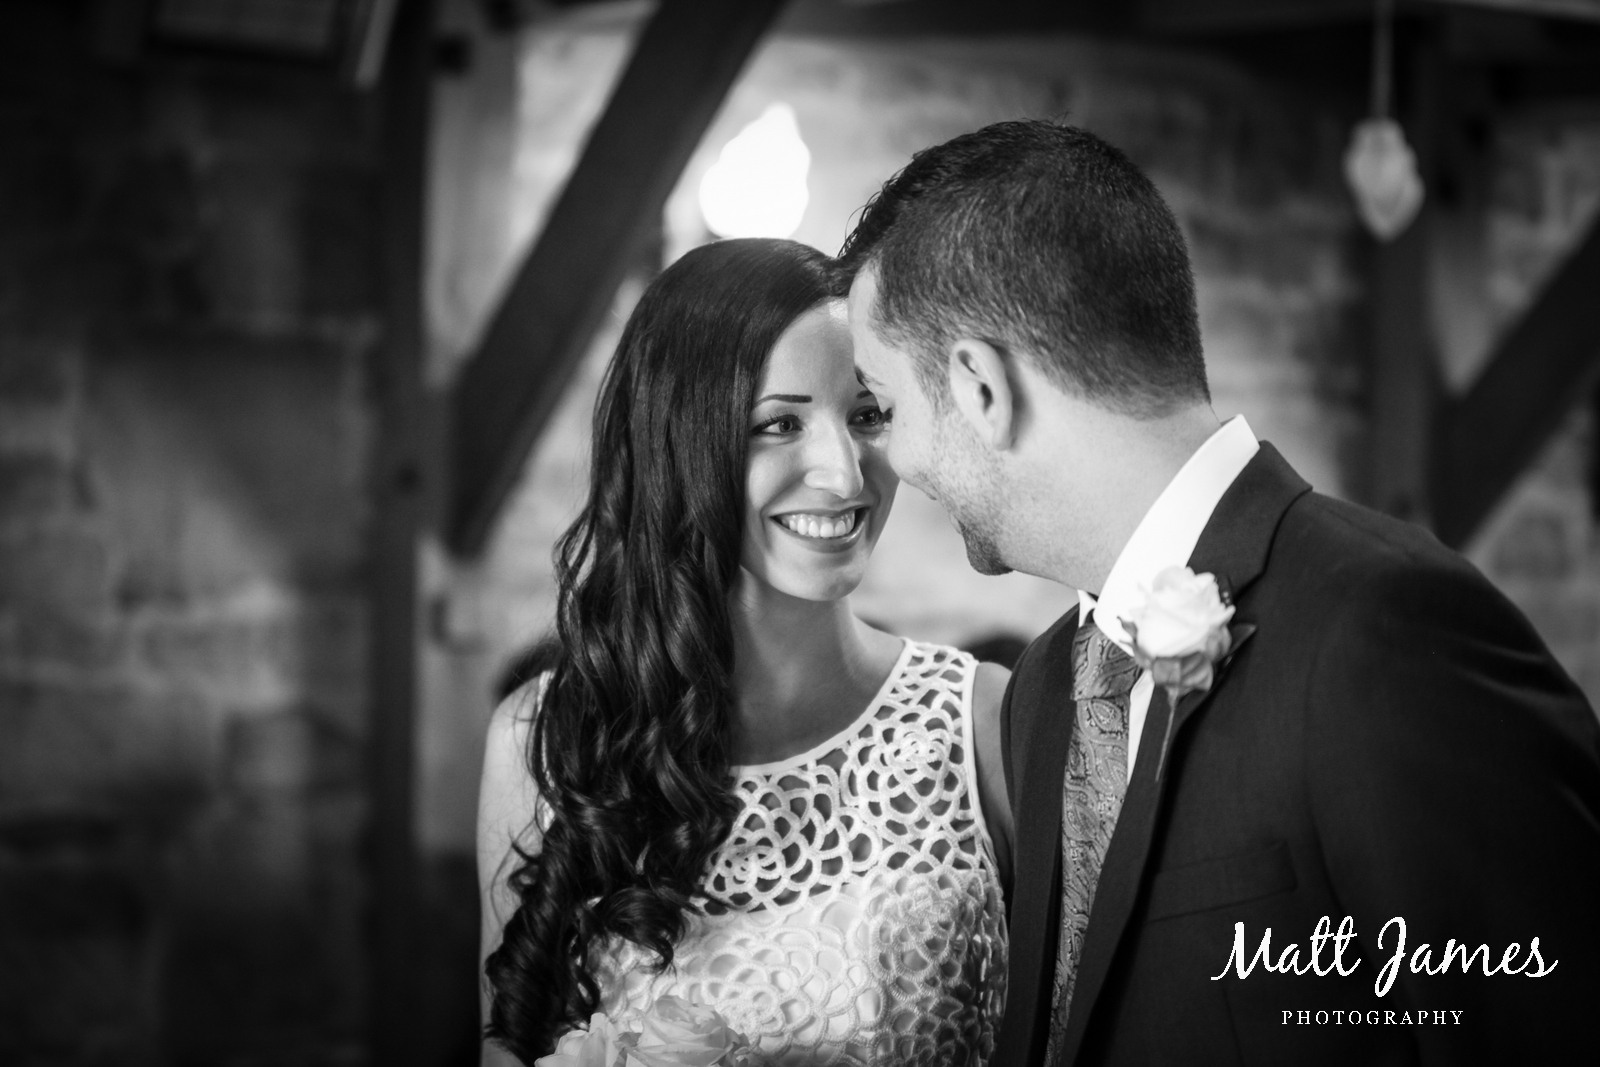 Sevenoaks-documentary-wedding-photographer-179